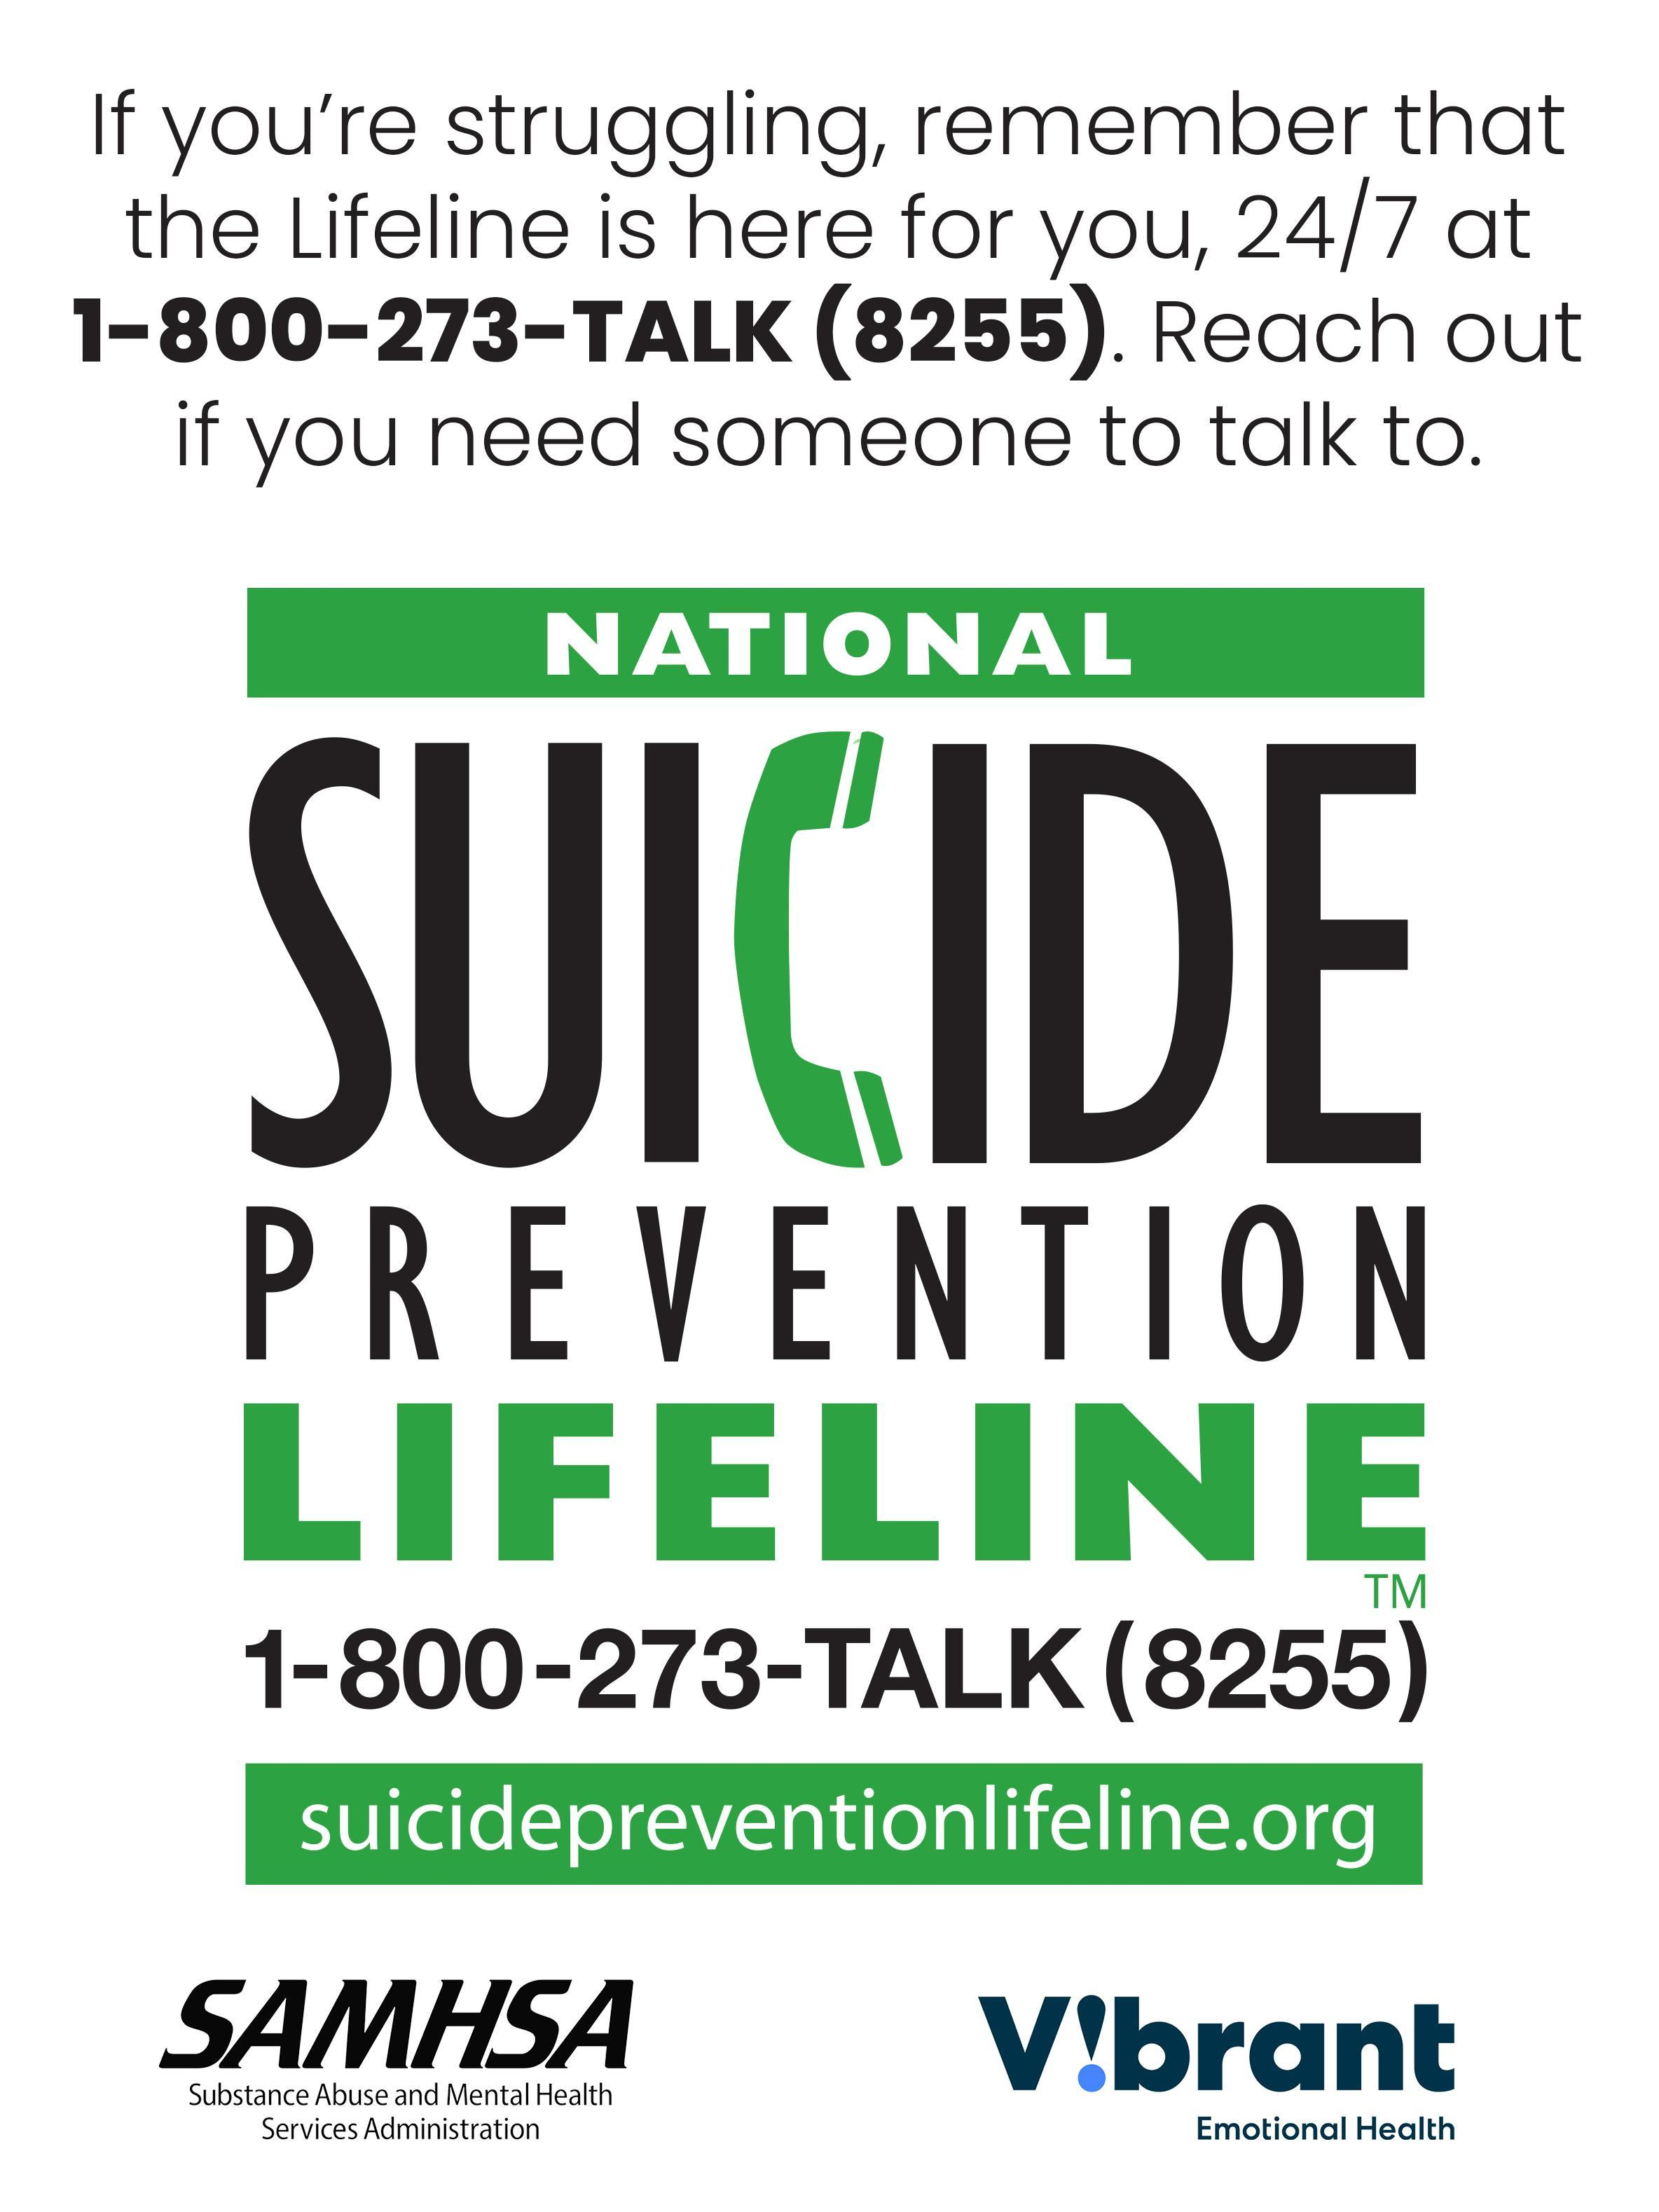 September is National Suicide Prevention Month!